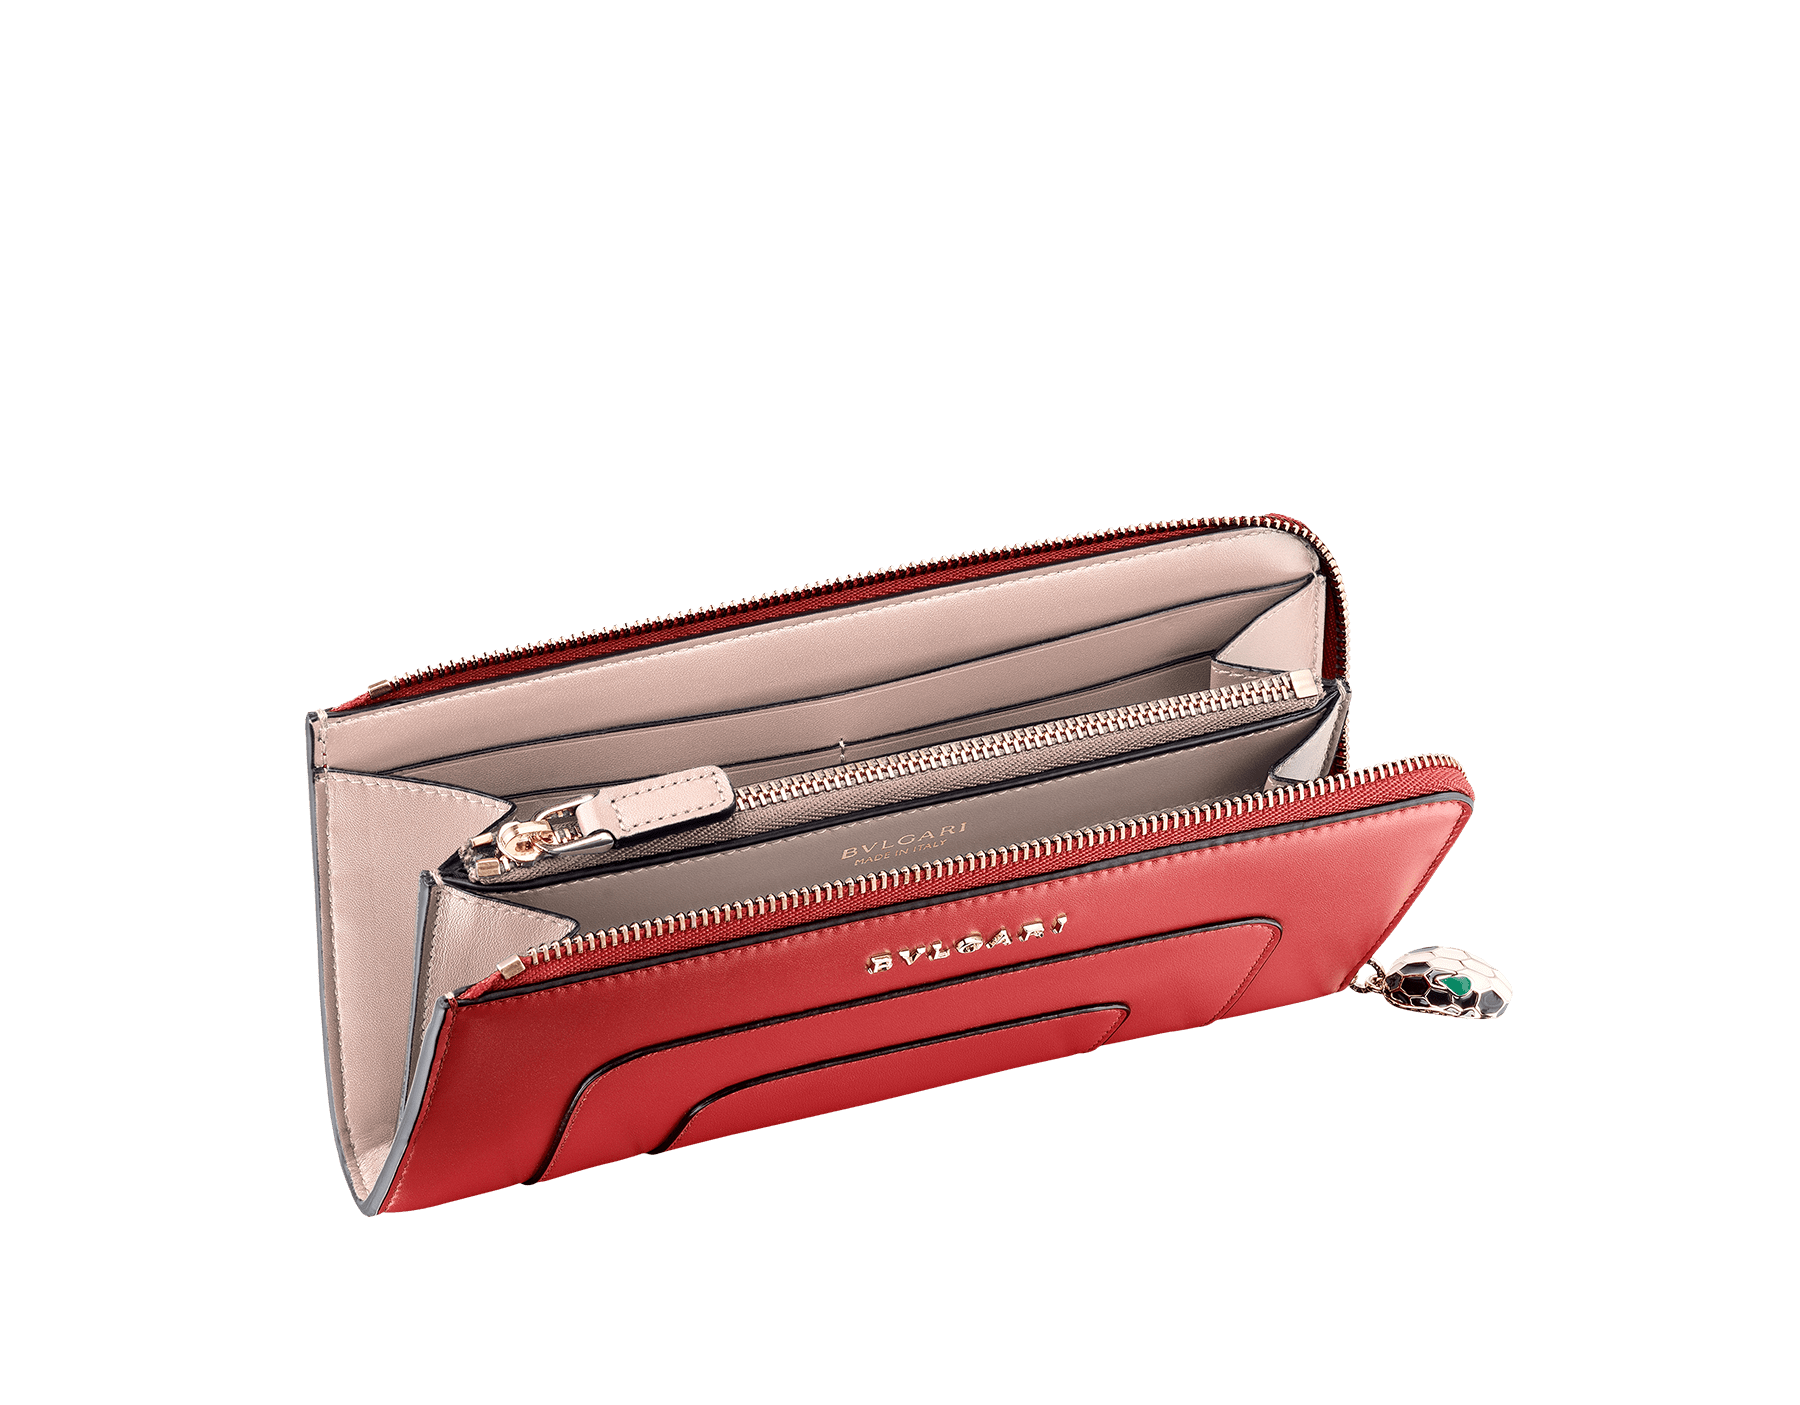 L-shaped zipped wallet in ruby red and desert quartz calf leather with brass light gold plated hardware. Iconic black and white enamel Serpenti head zip puller with malachite enamel eyes. 281289 image 2